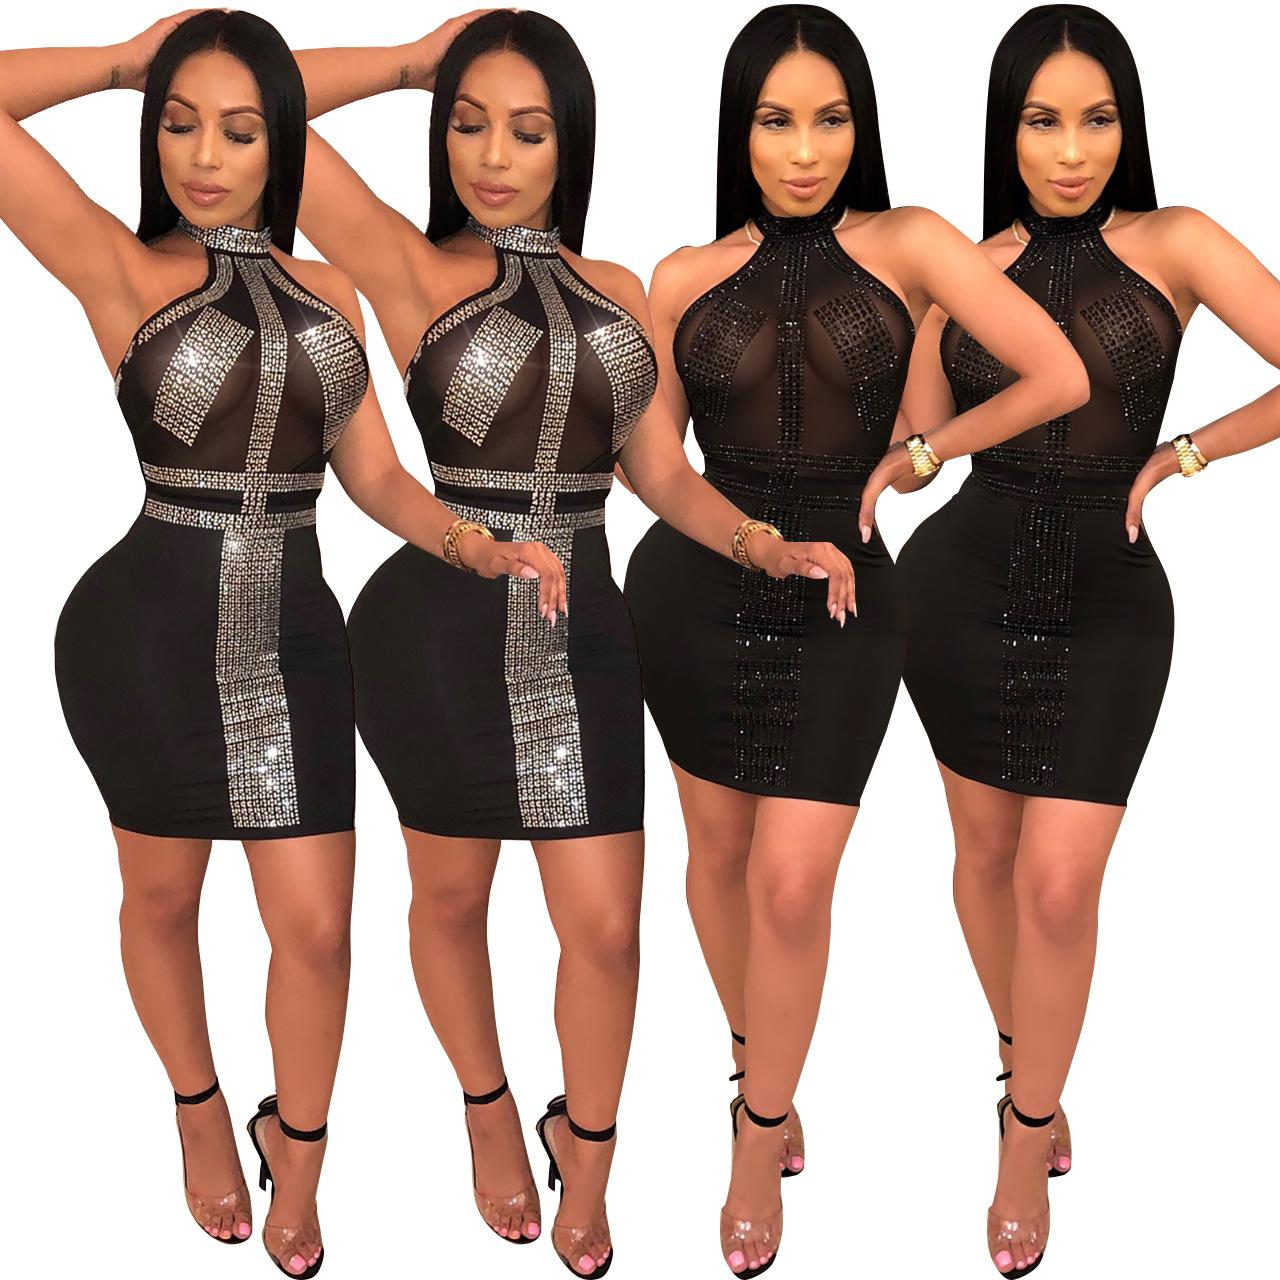 Party Dresses Nightclub Rhinestone Dress Sexy Black Sheer Gauze Geometrical Pattern Halter Sleeveless Zip Mini Club Bodycon Dress